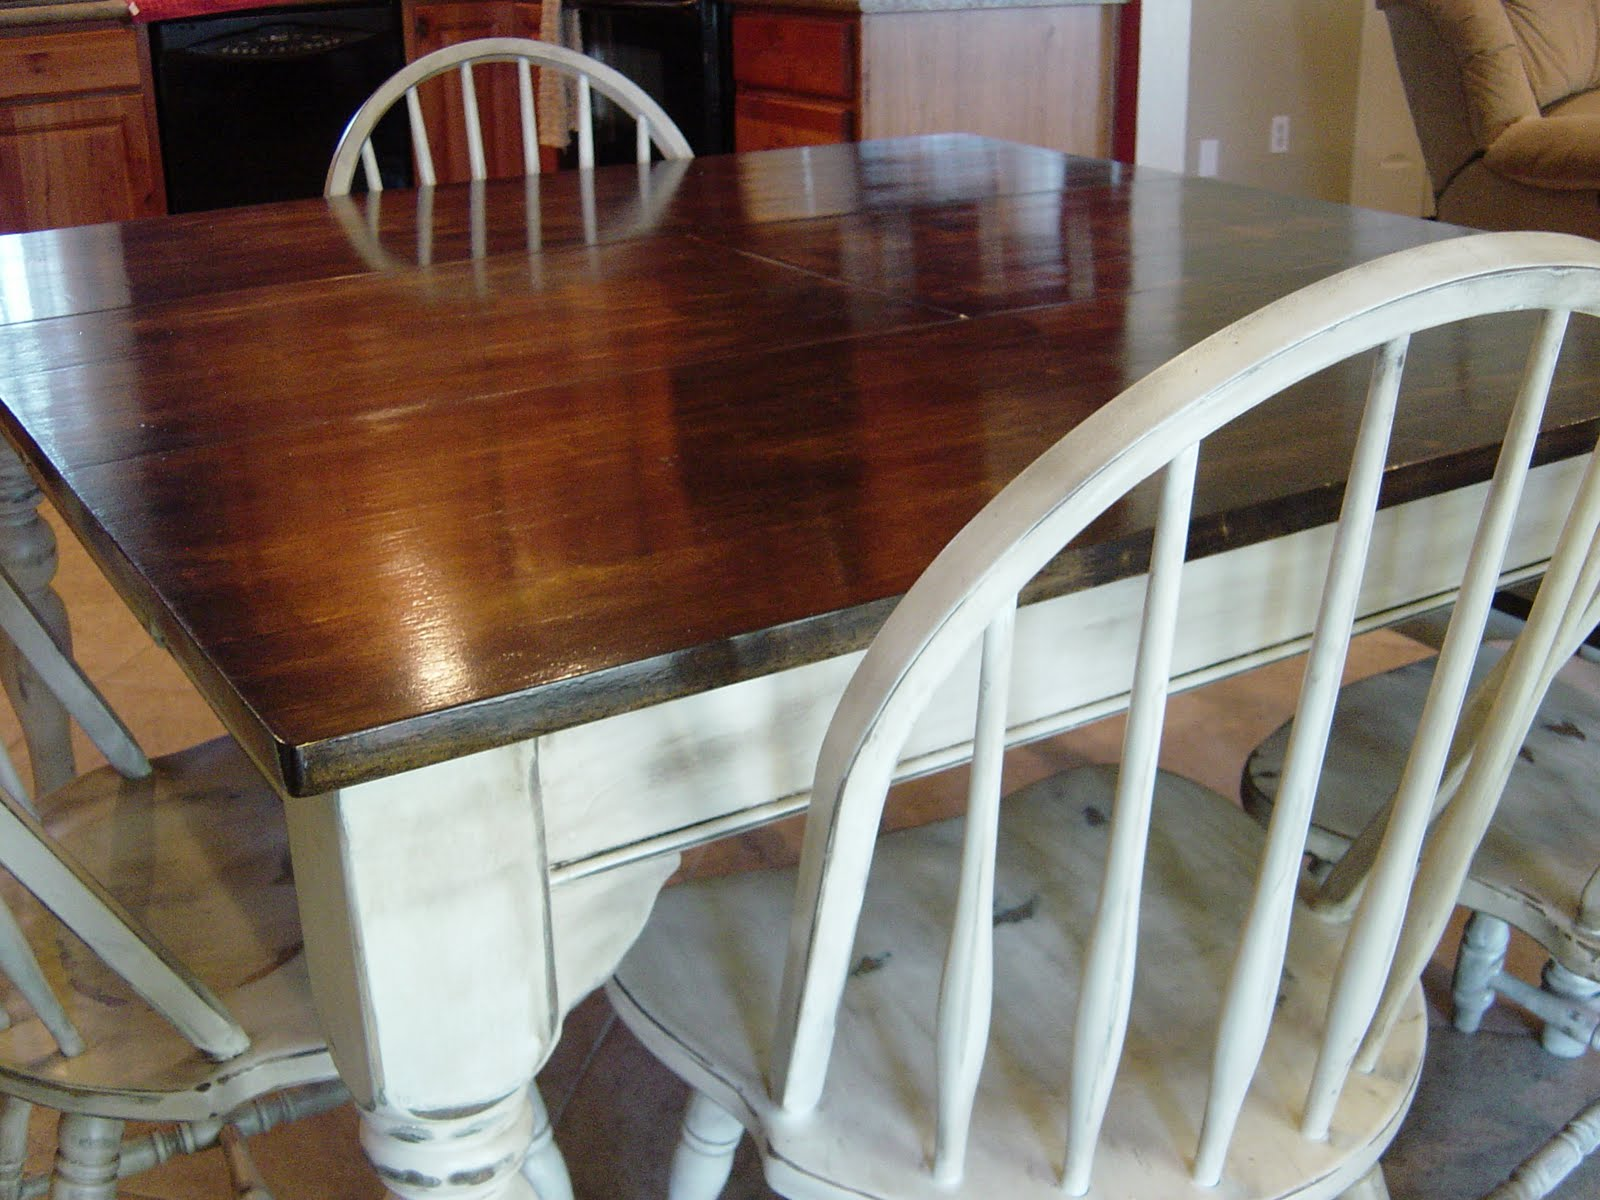 kitchen table refinished with distressed look - Distressed White Kitchen Table